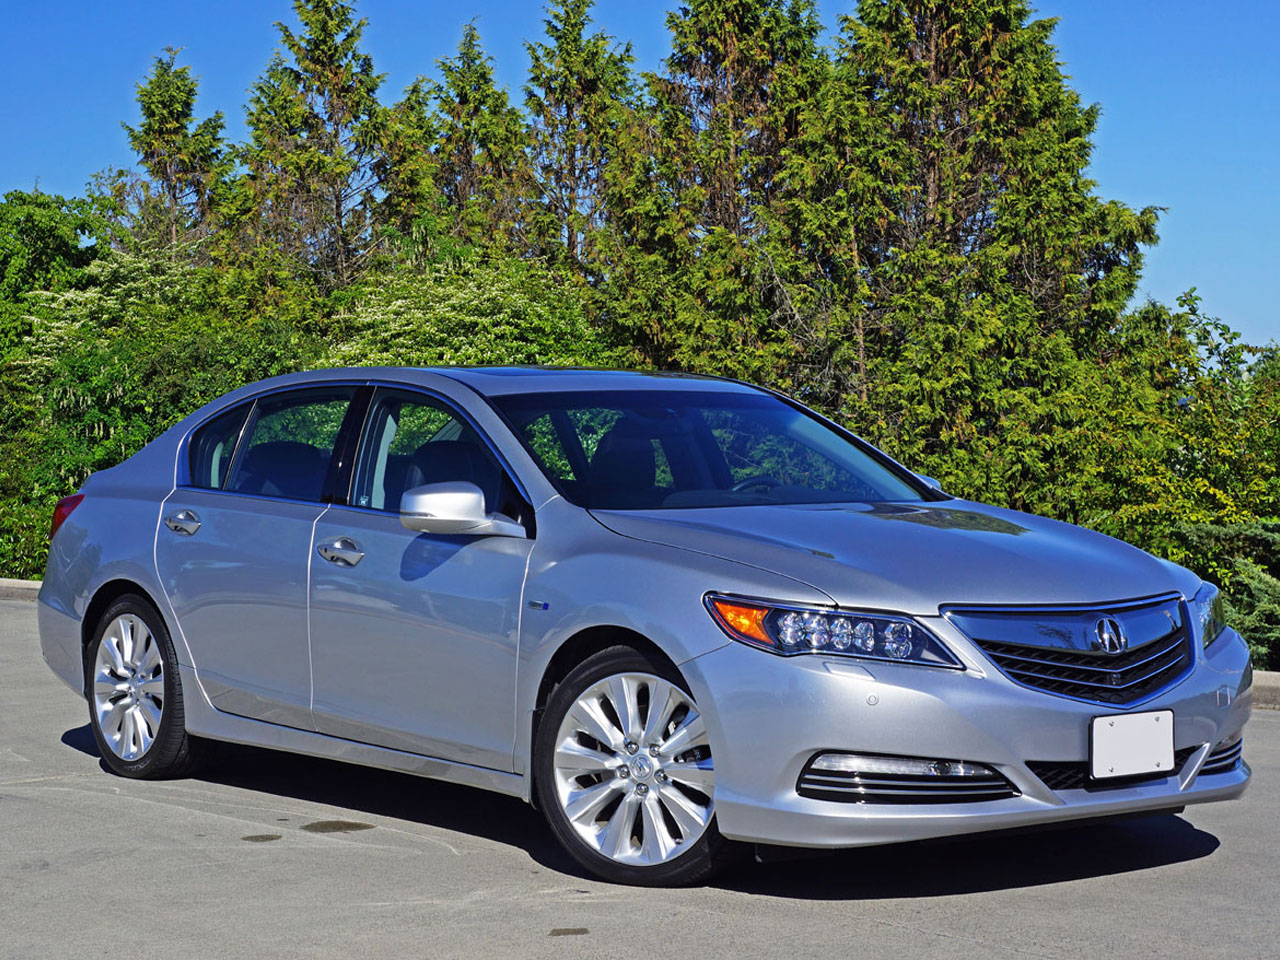 rlx awd review test acura road driving hybrid reviews car sh sport